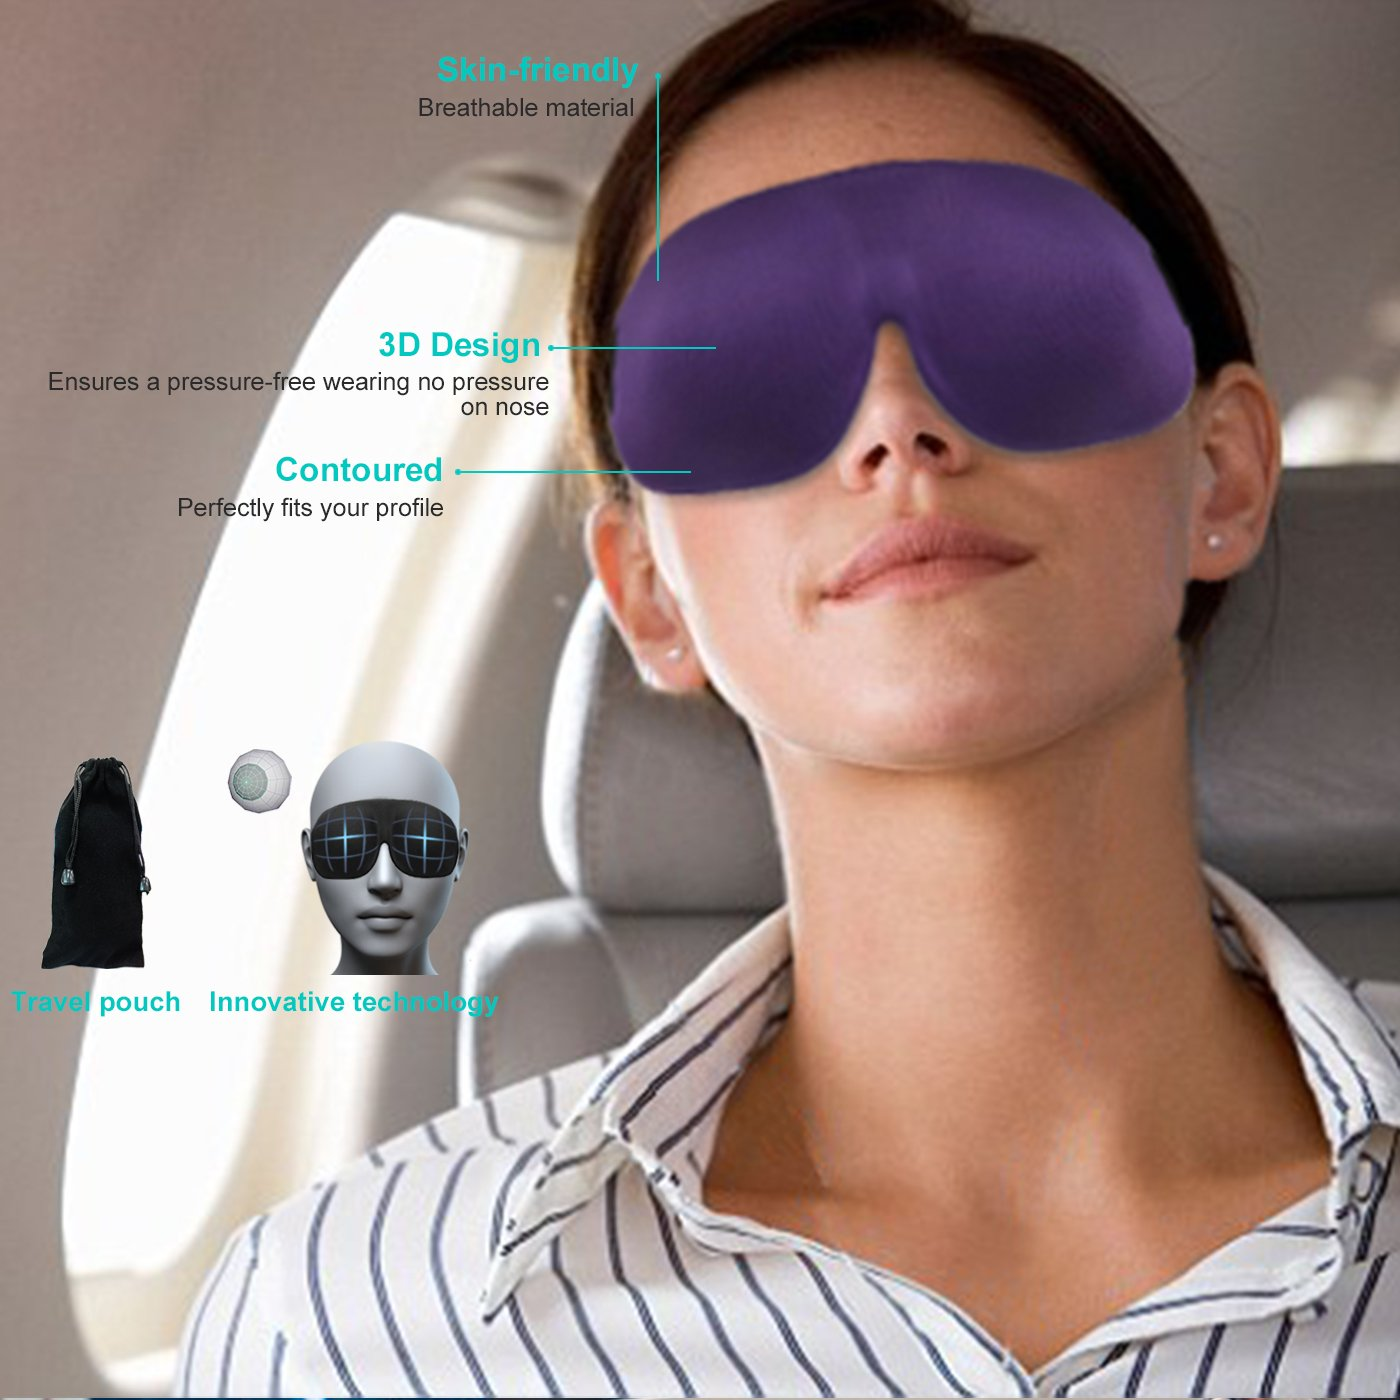 3D Comfortable Purple Travel Sleep Eye Mask for Business Women Won't Ruin Your Make-up, 100% Blackout Portable Office Sleep Face Mask Help Sleep Great Work Day or Business Travel, Adjustable Easy to Clean GreatMaster